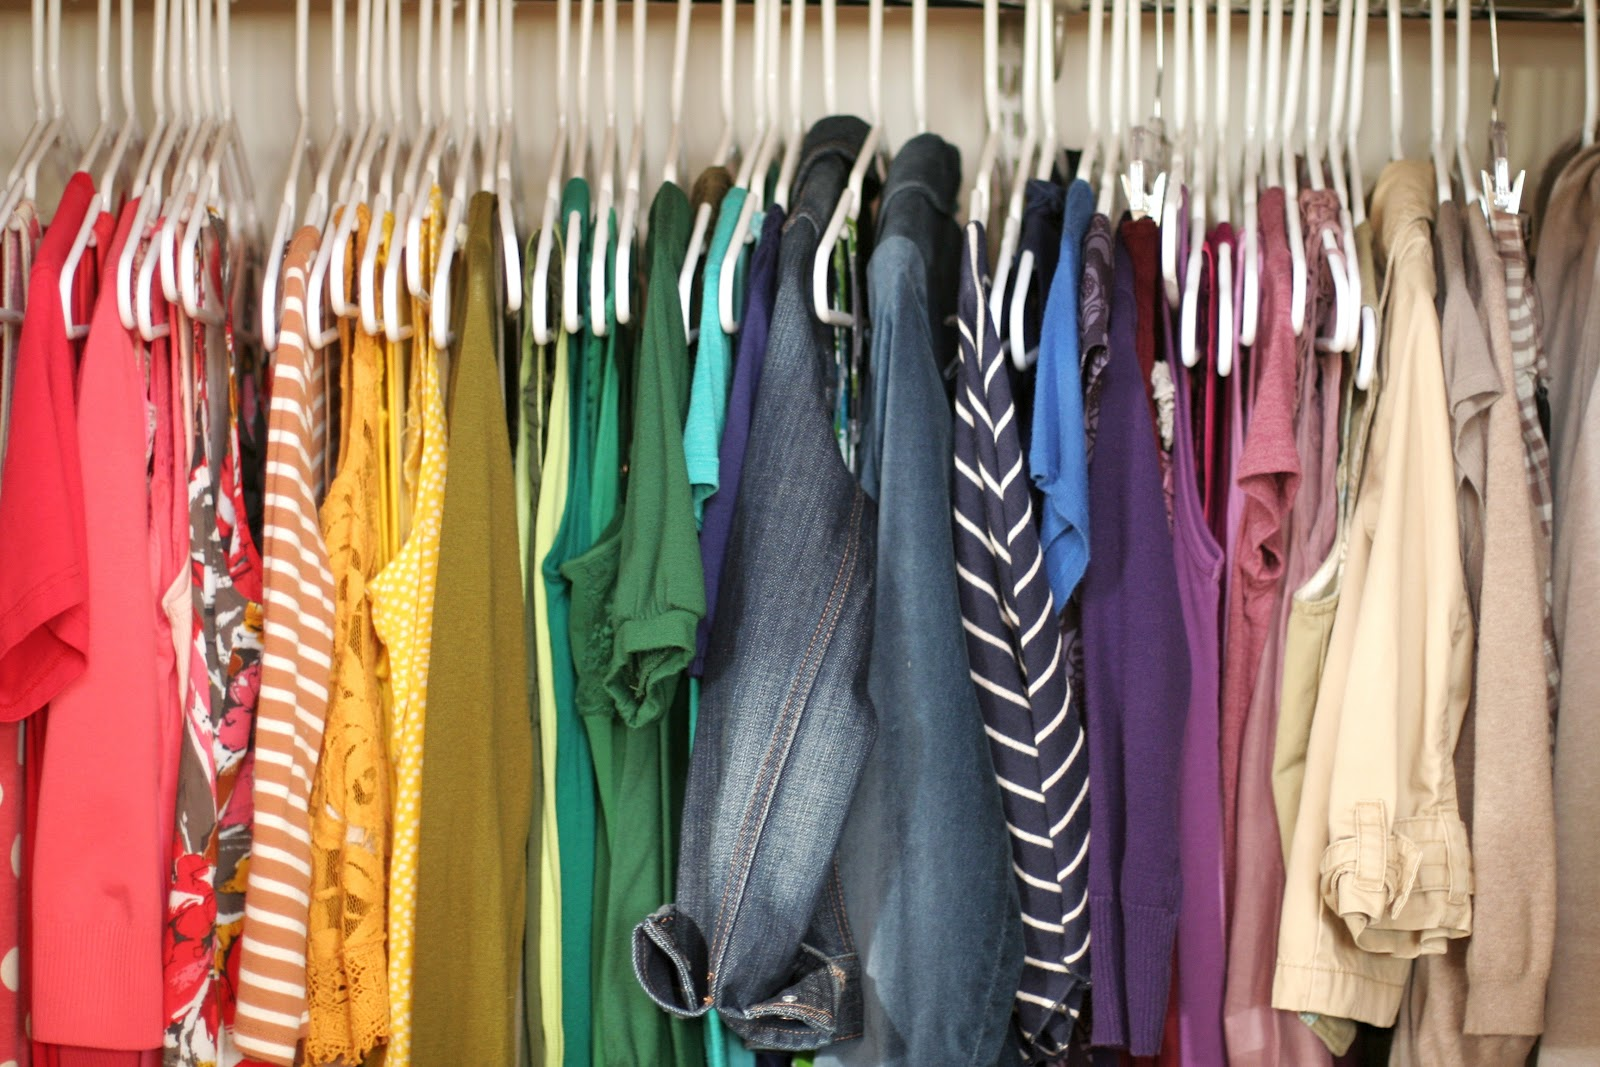 15 Reasons To Organize Your Closet 101 Days Of Organization,How Big Is A King Size Bed